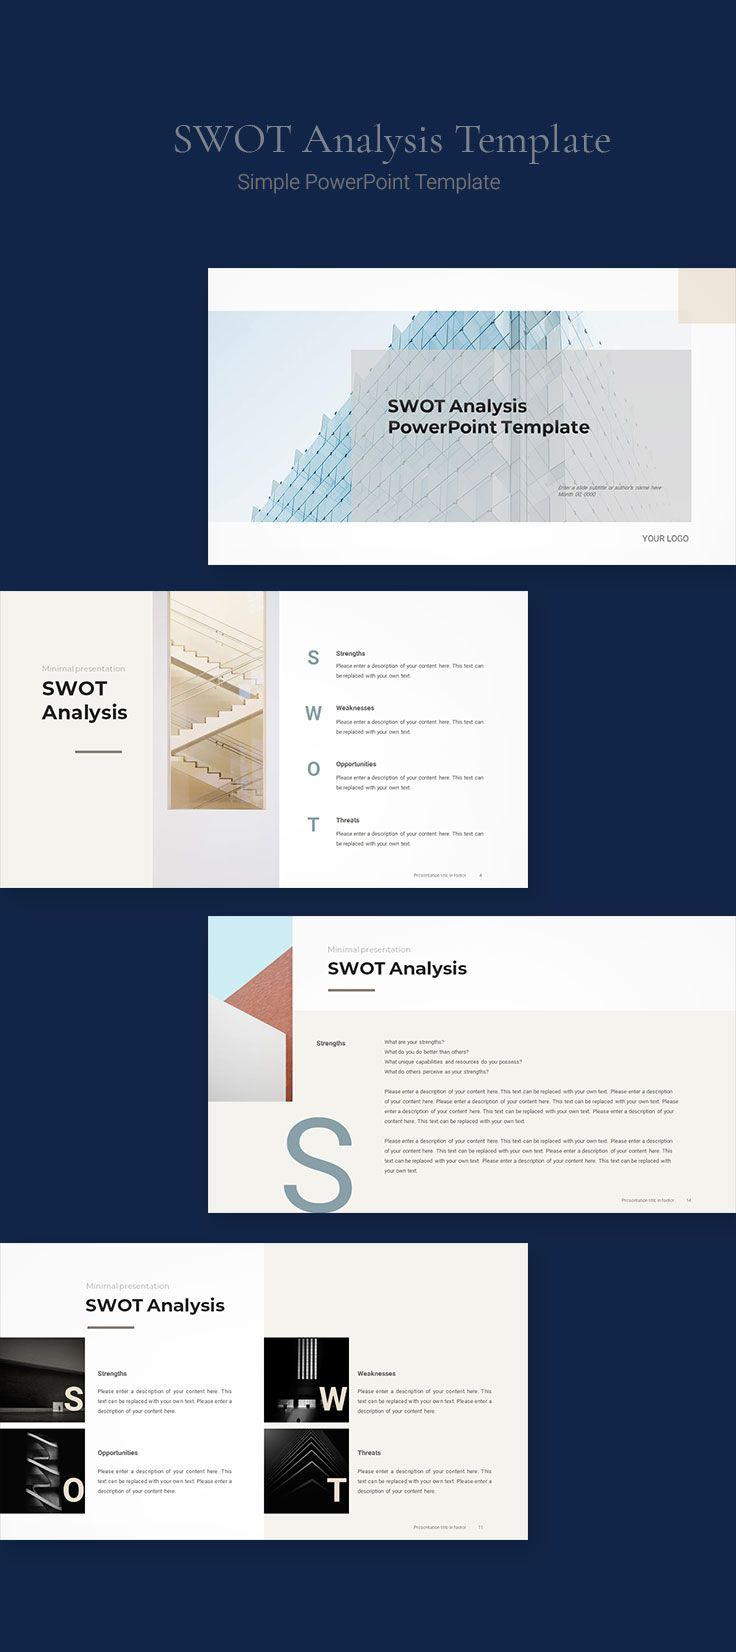 SWOT Analysis Template Download PPT in